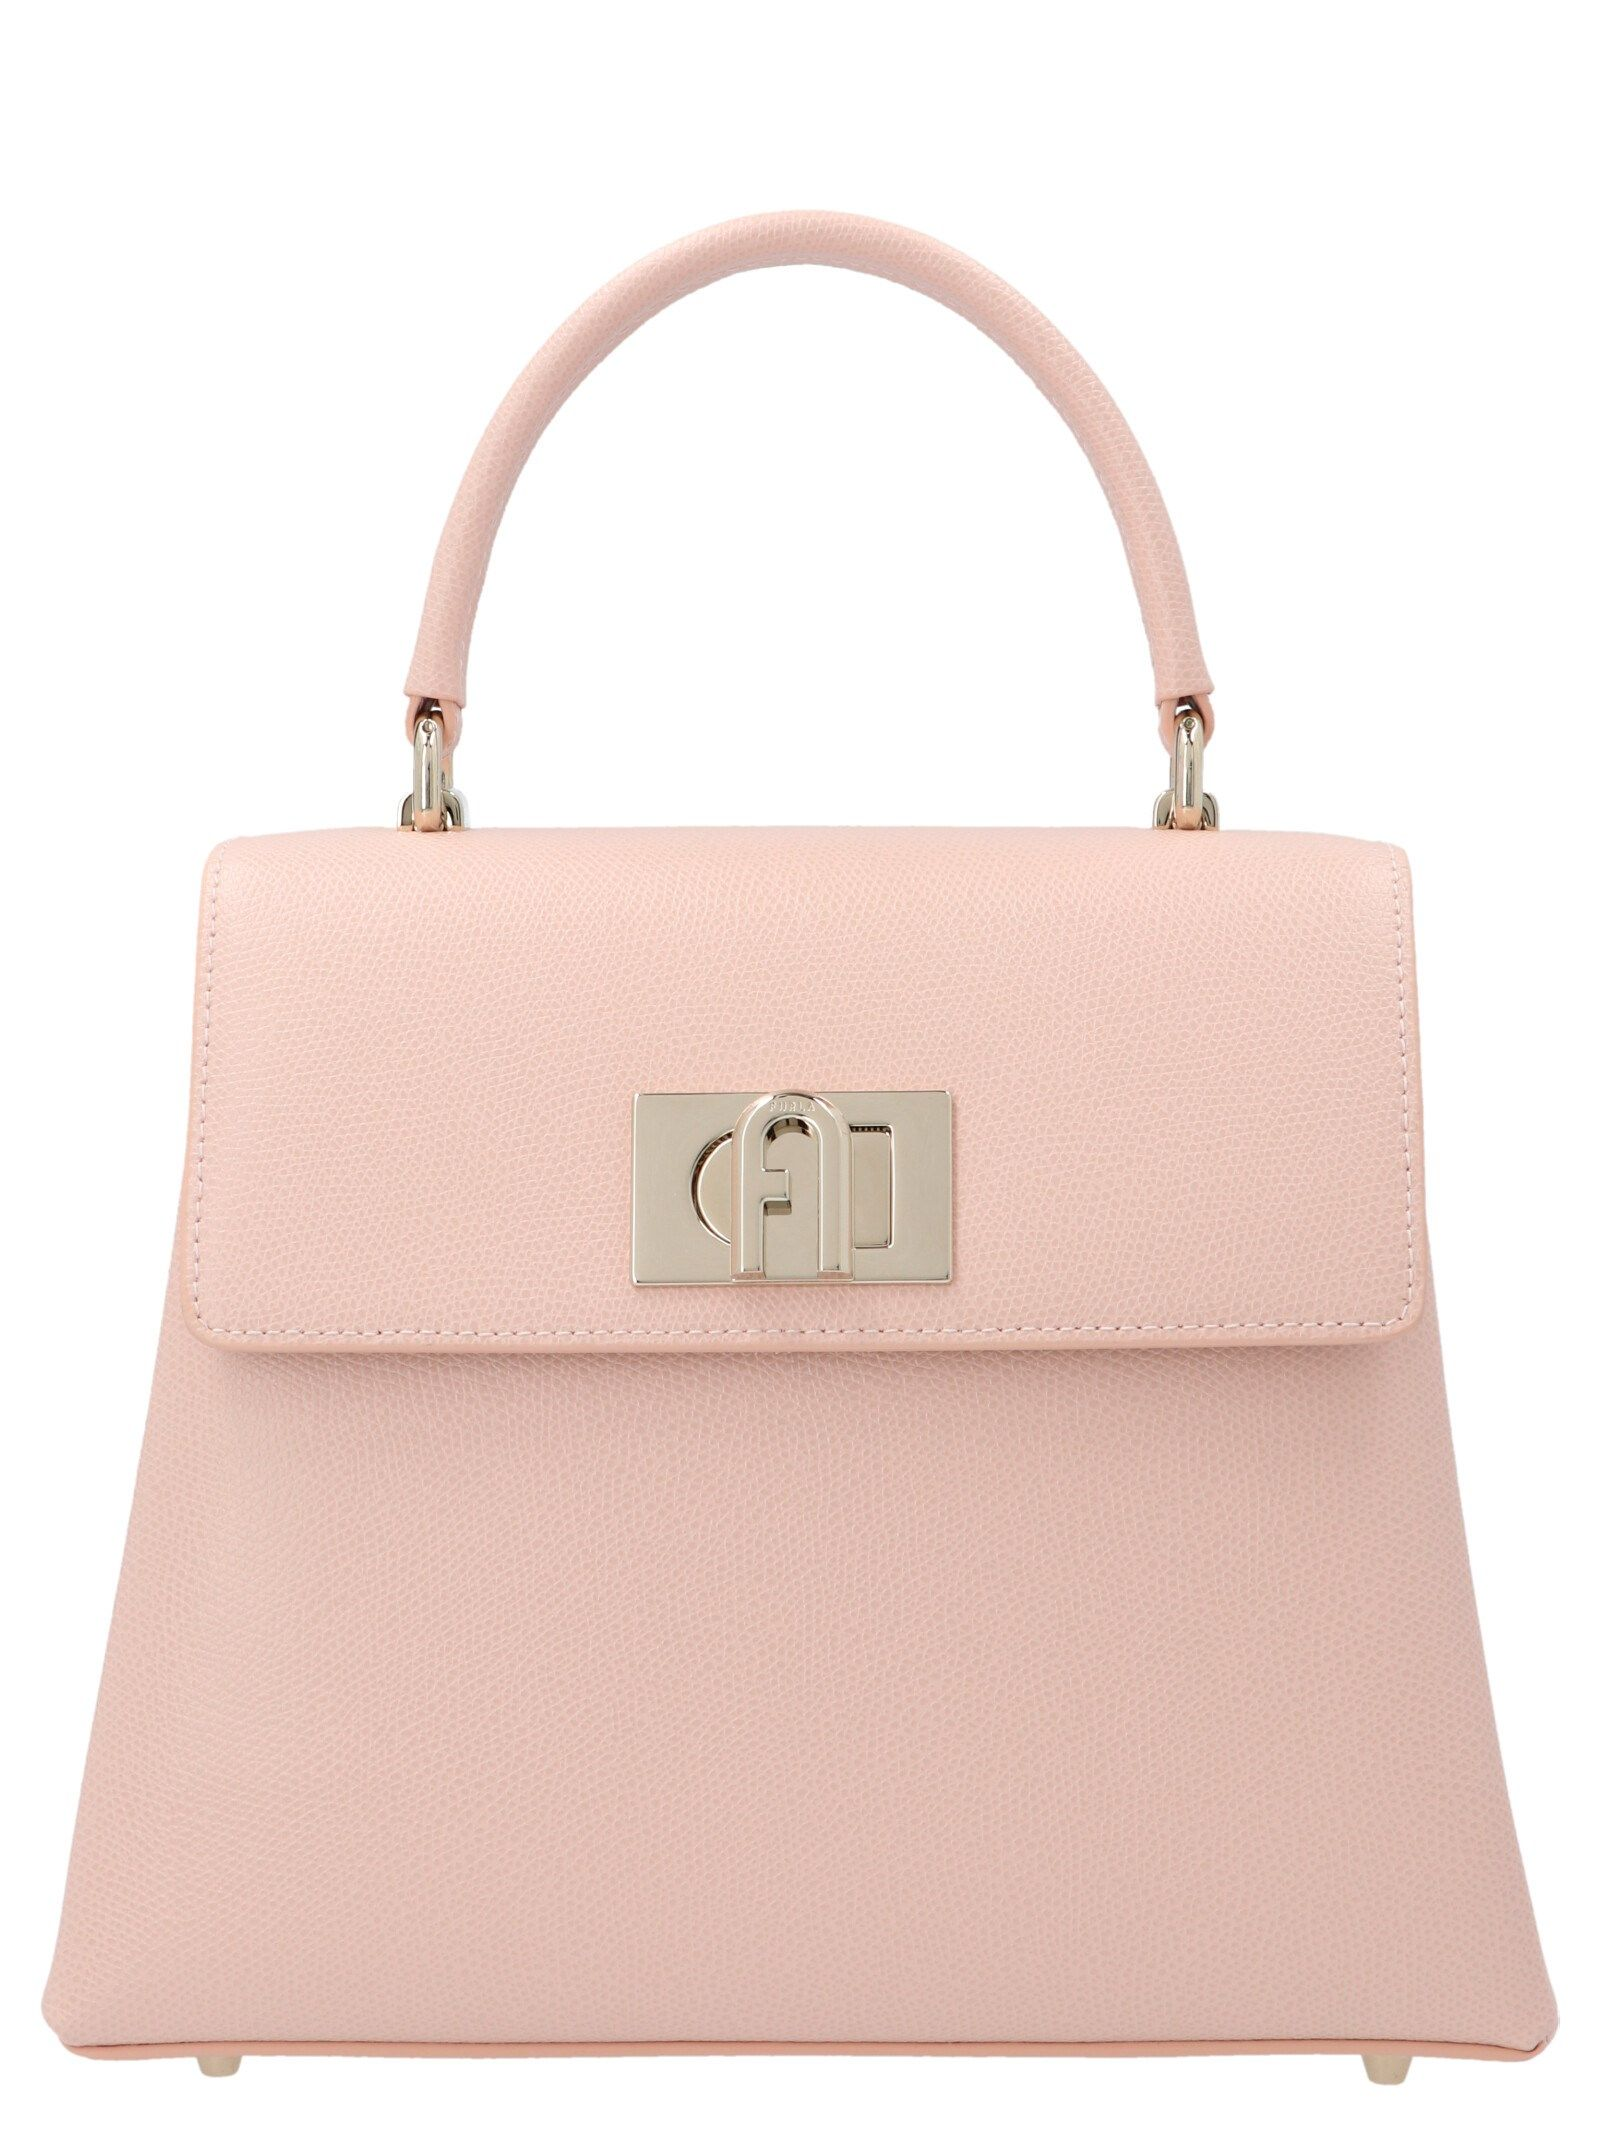 Furla FURLA WOMEN'S BAKPACOARE0001BR00 PINK OTHER MATERIALS HANDBAG